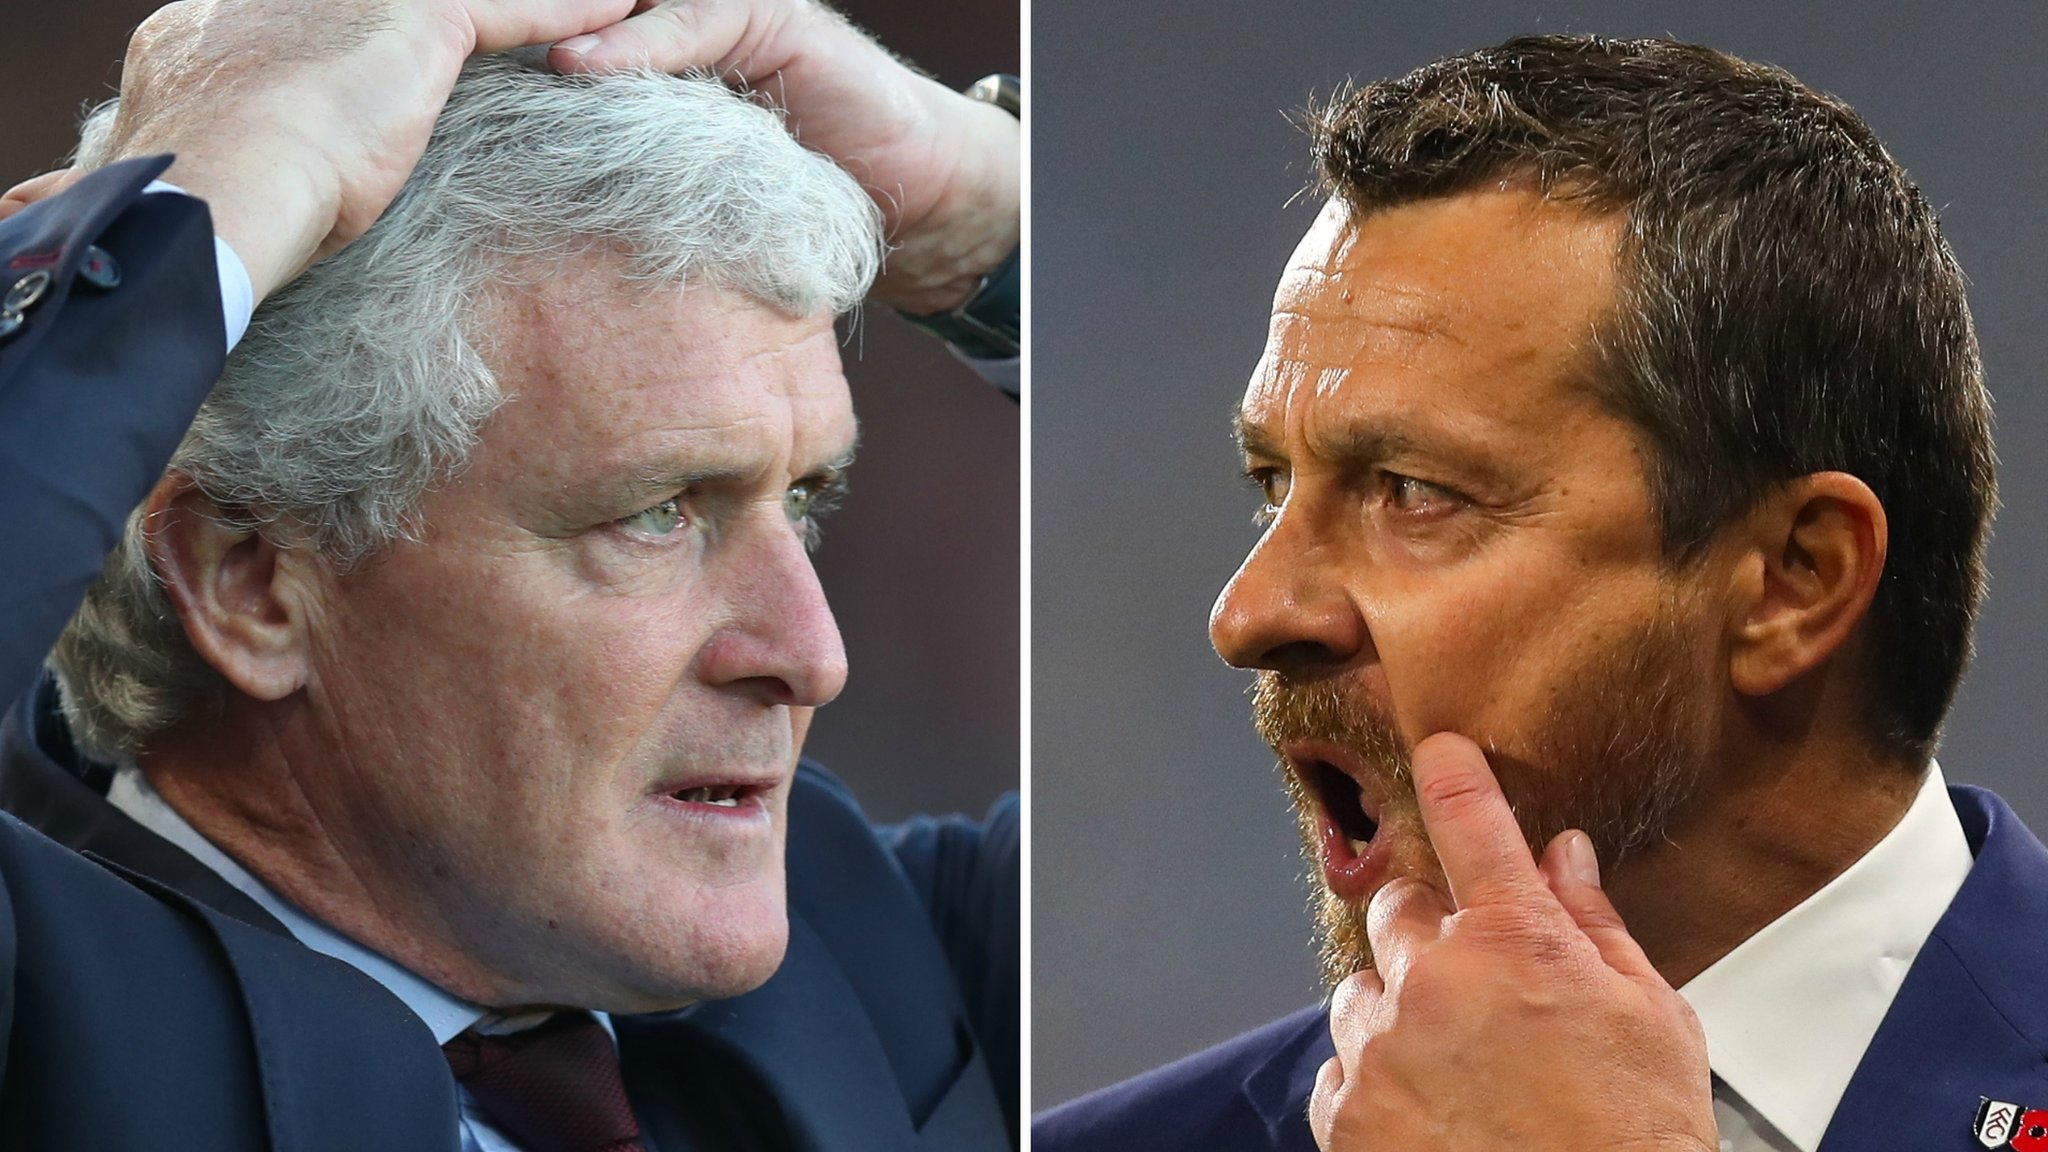 Premier League: Is it unusual that no manager has been sacked yet?